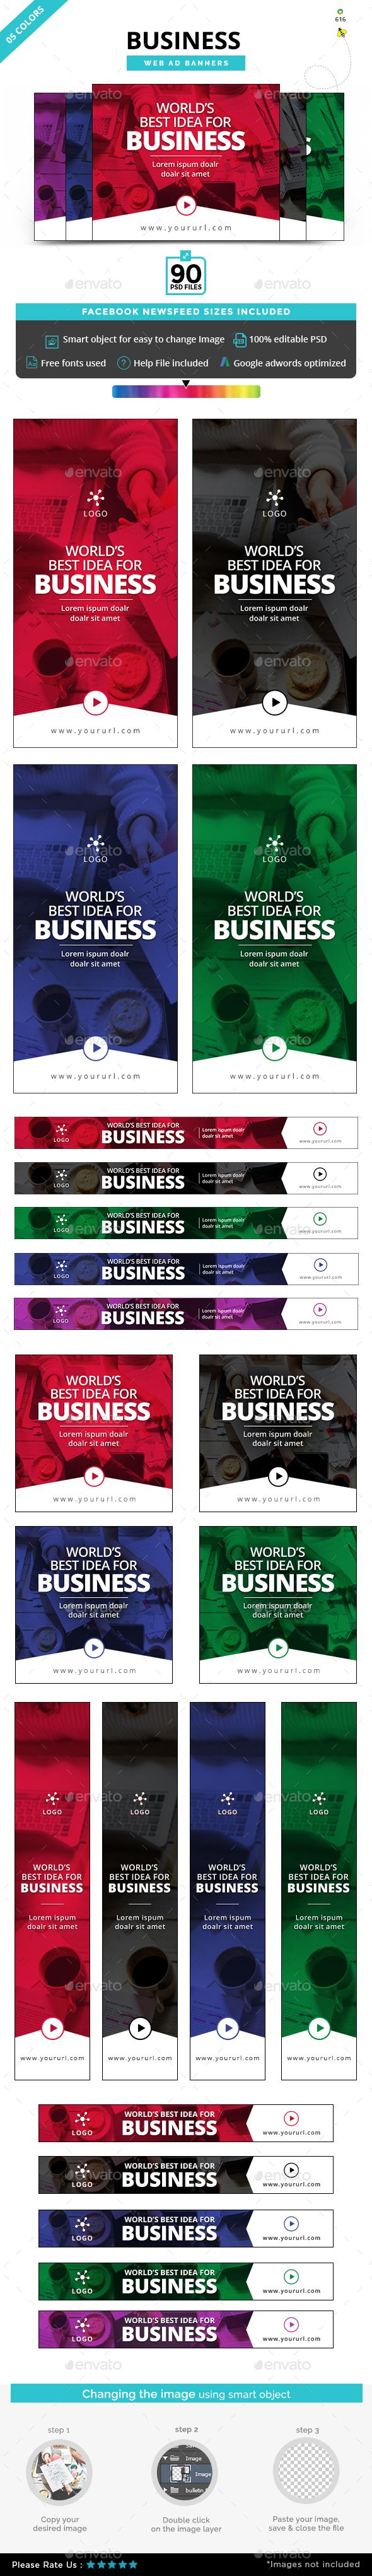 Business Banners - #Banners & Ads #Web Elements